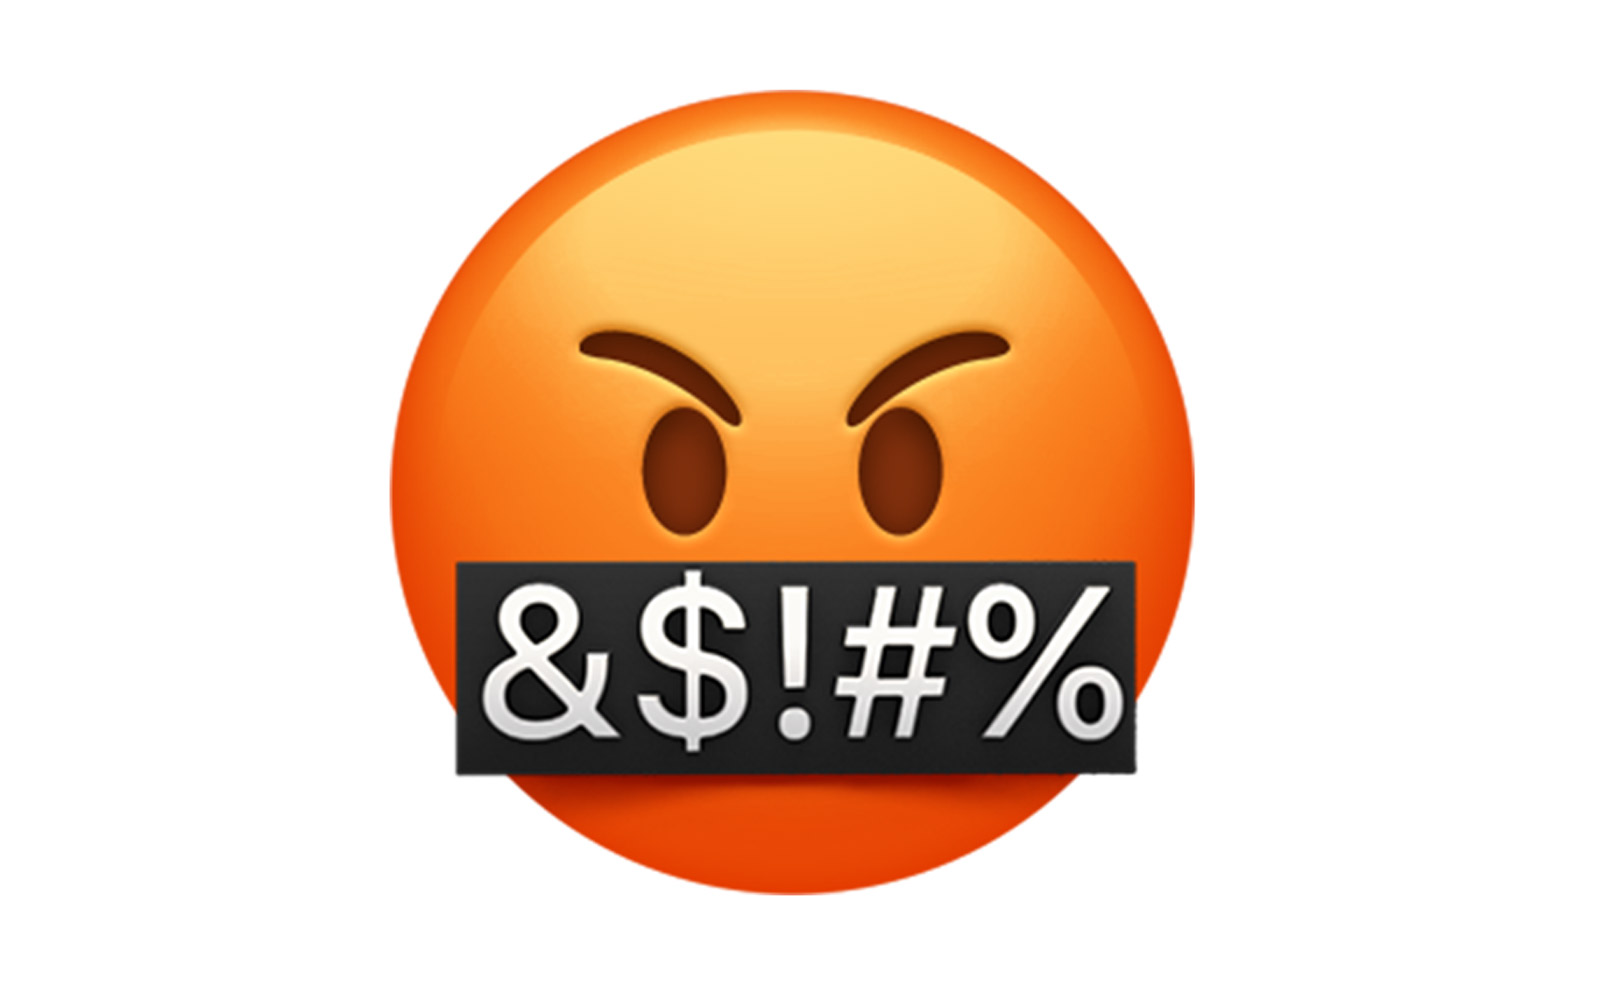 New iPhone emoji: bad mouth